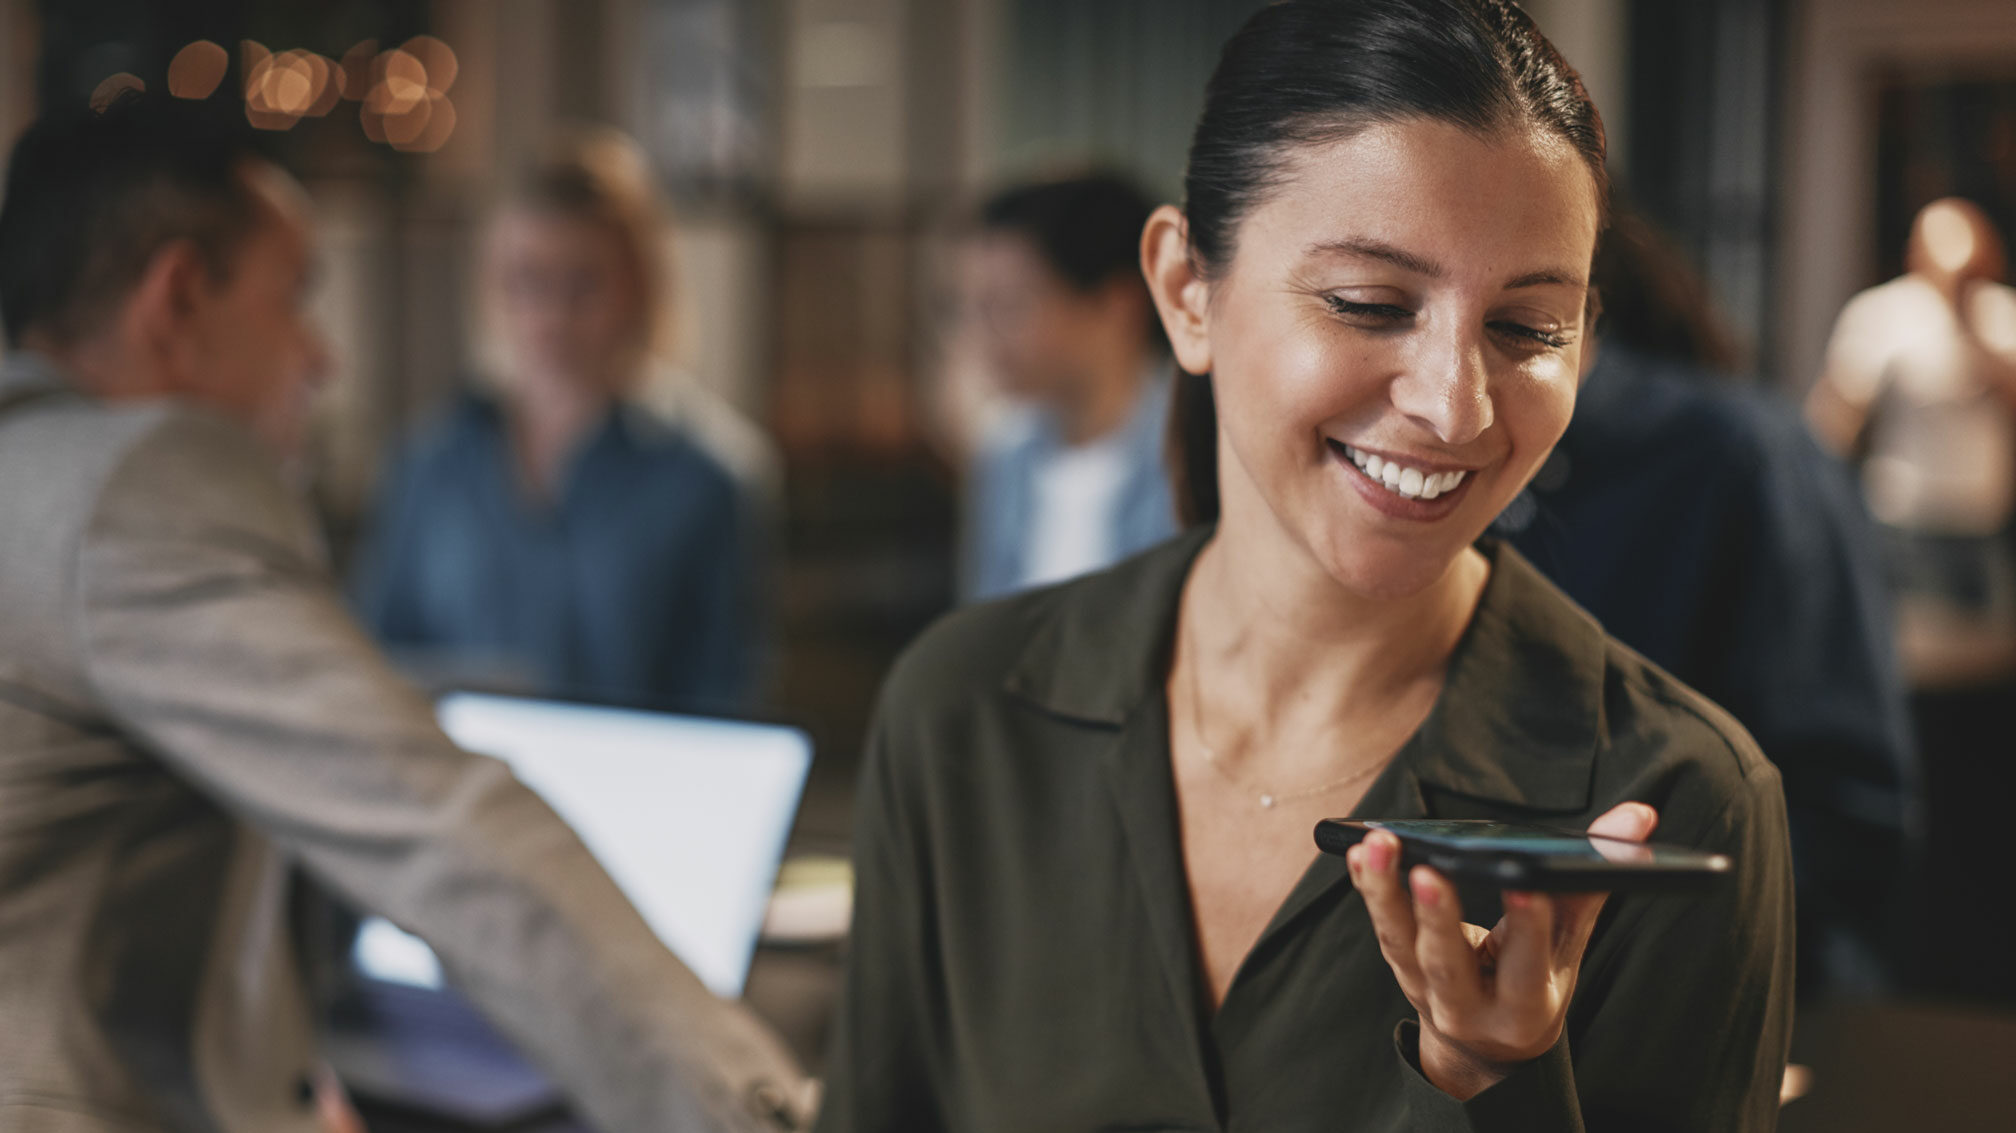 Woman talking to customer support on phone